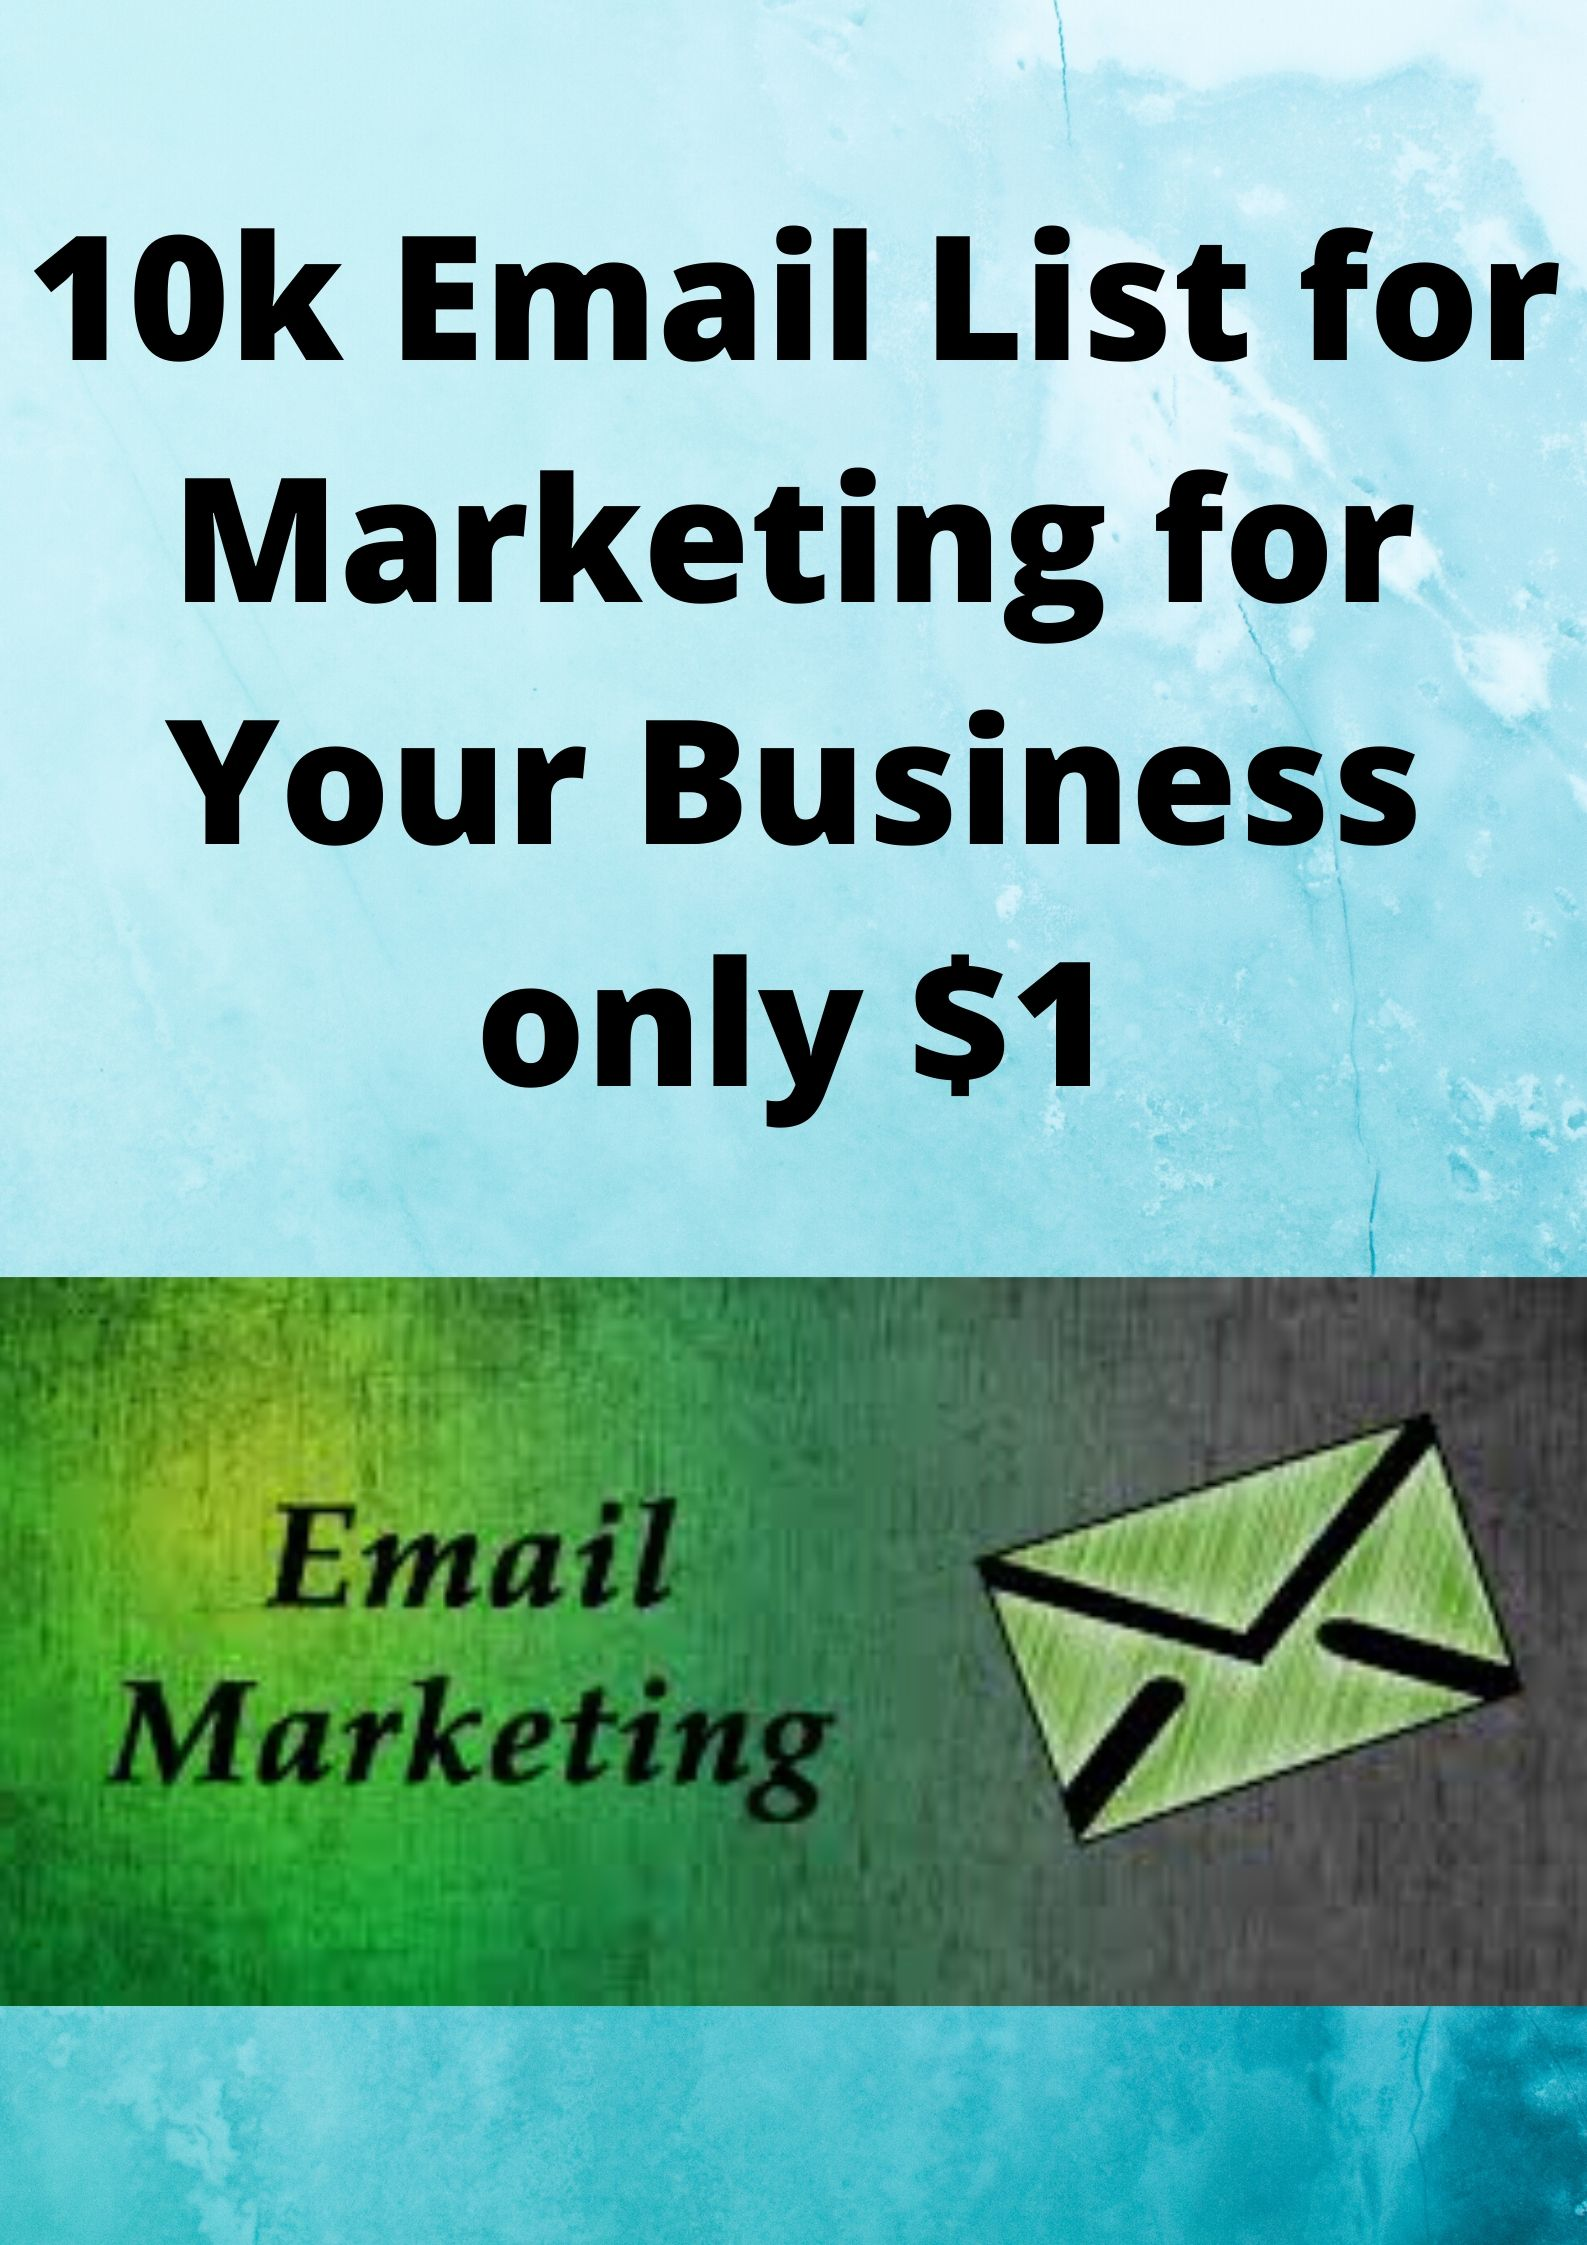 10k Email List for Improving your Business